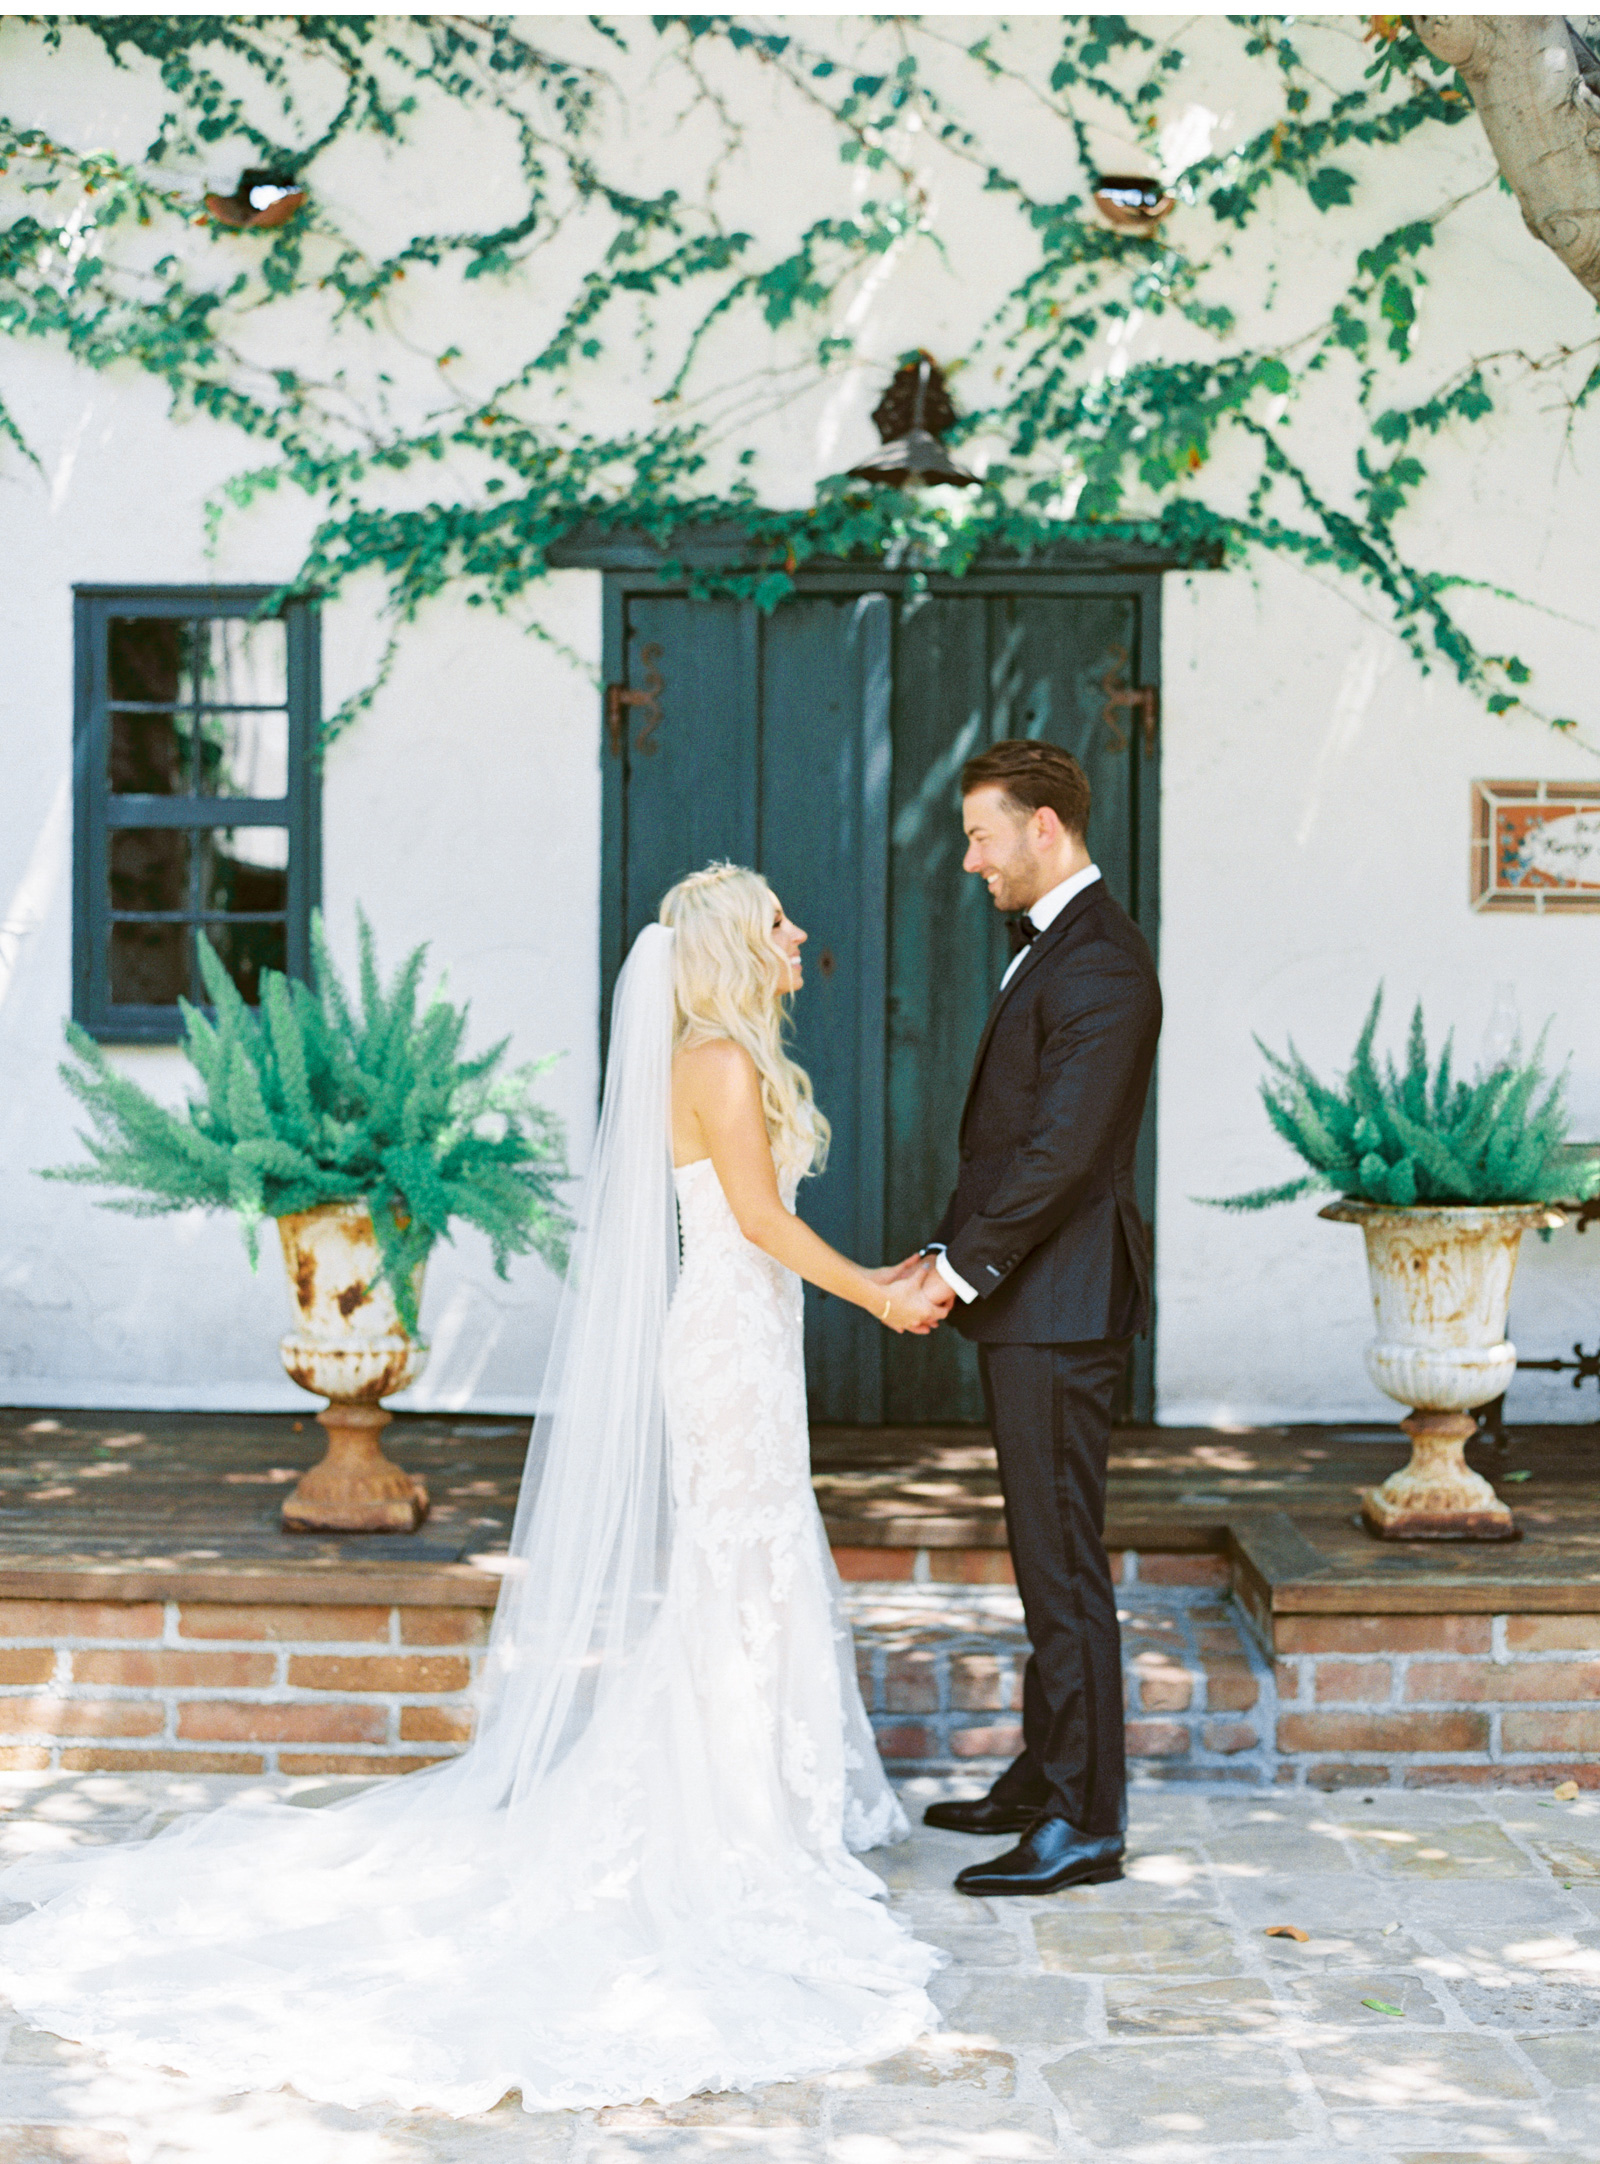 San-Juan-Capistrano-Wedding-Photographer-Southern-California-Wedding-Venues-Malibu-Wedding-Photographer-Natalie-Schutt-Photography_05.jpg